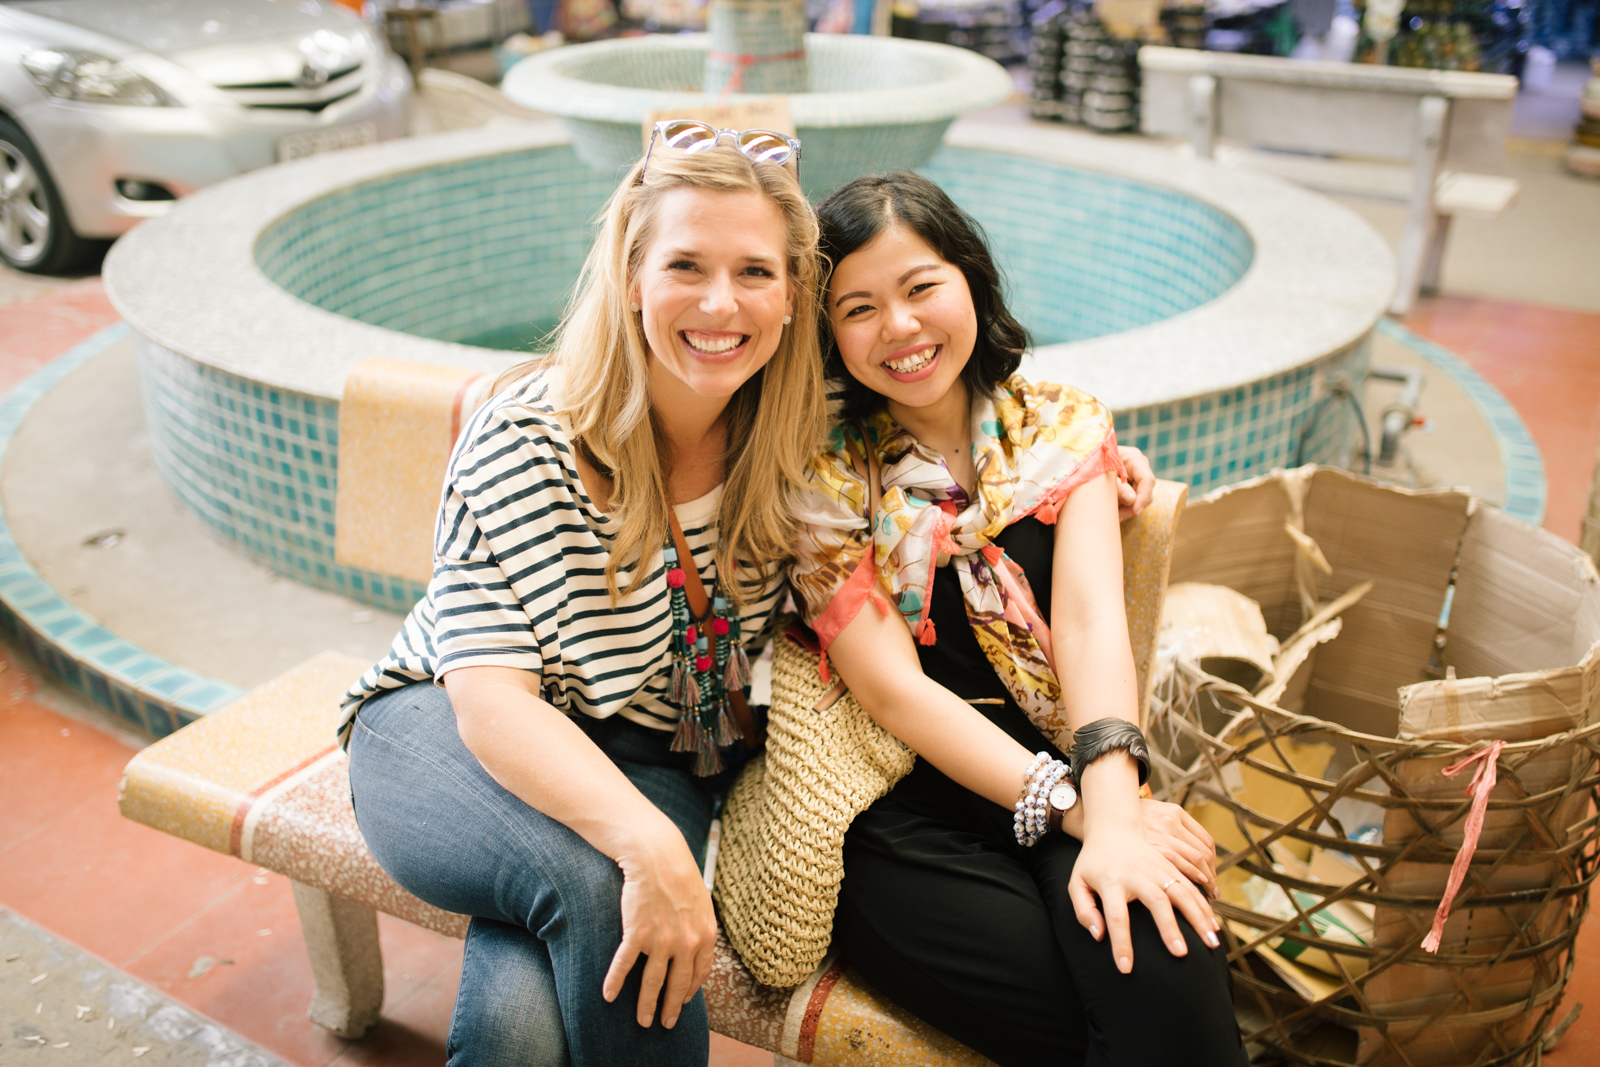 Noonday's founder, Jessica Honegger, with Mai of Au Lac Designs